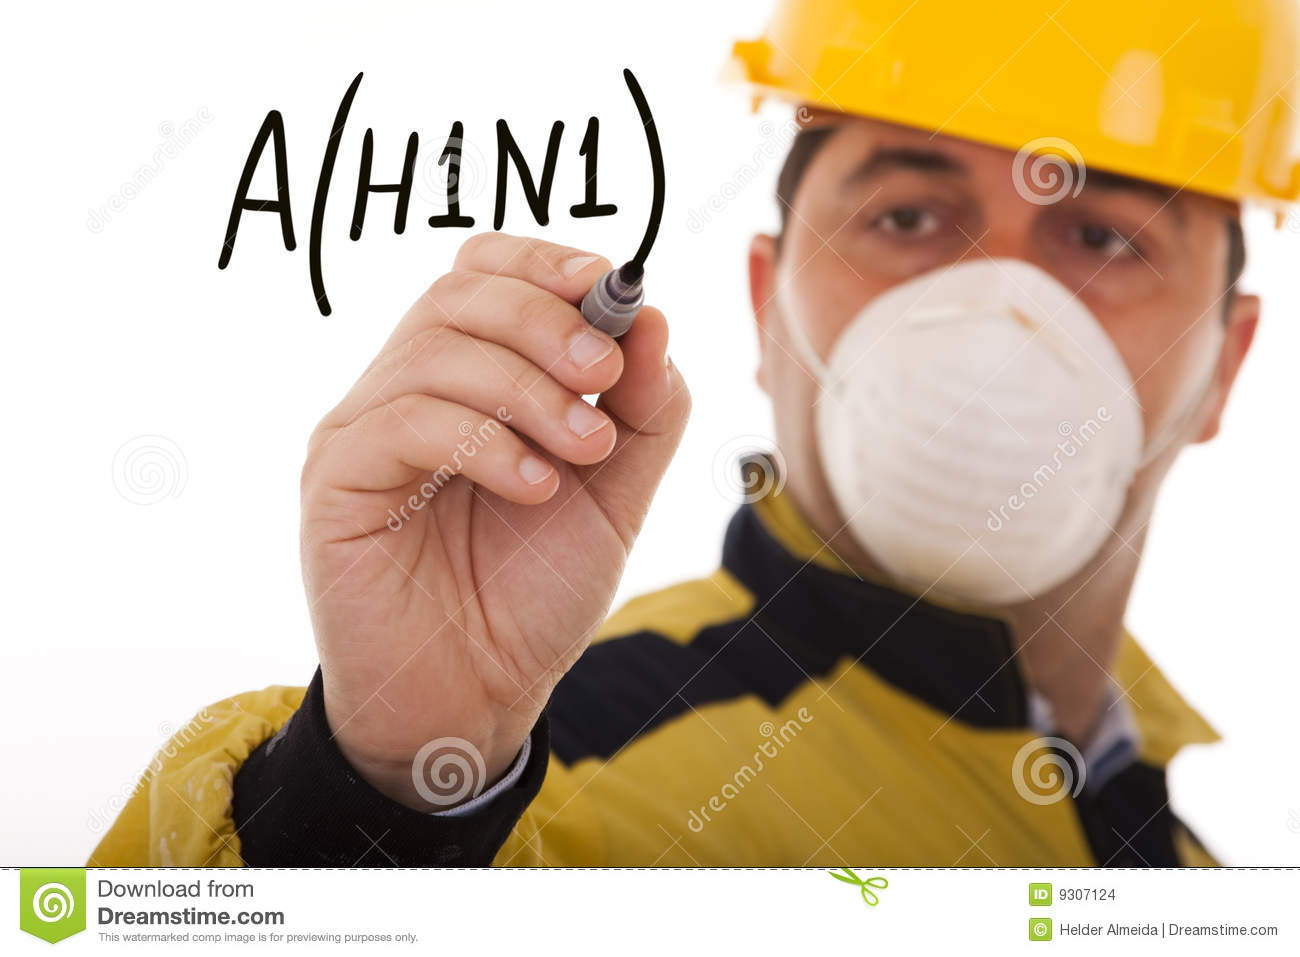 influenza a h1n1 essay Influenza h1n1 virus as a global issue - doctor alfhonce michael - essay - biology - diseases, health, nutrition - publish your bachelor's or master's thesis, dissertation, term paper or.